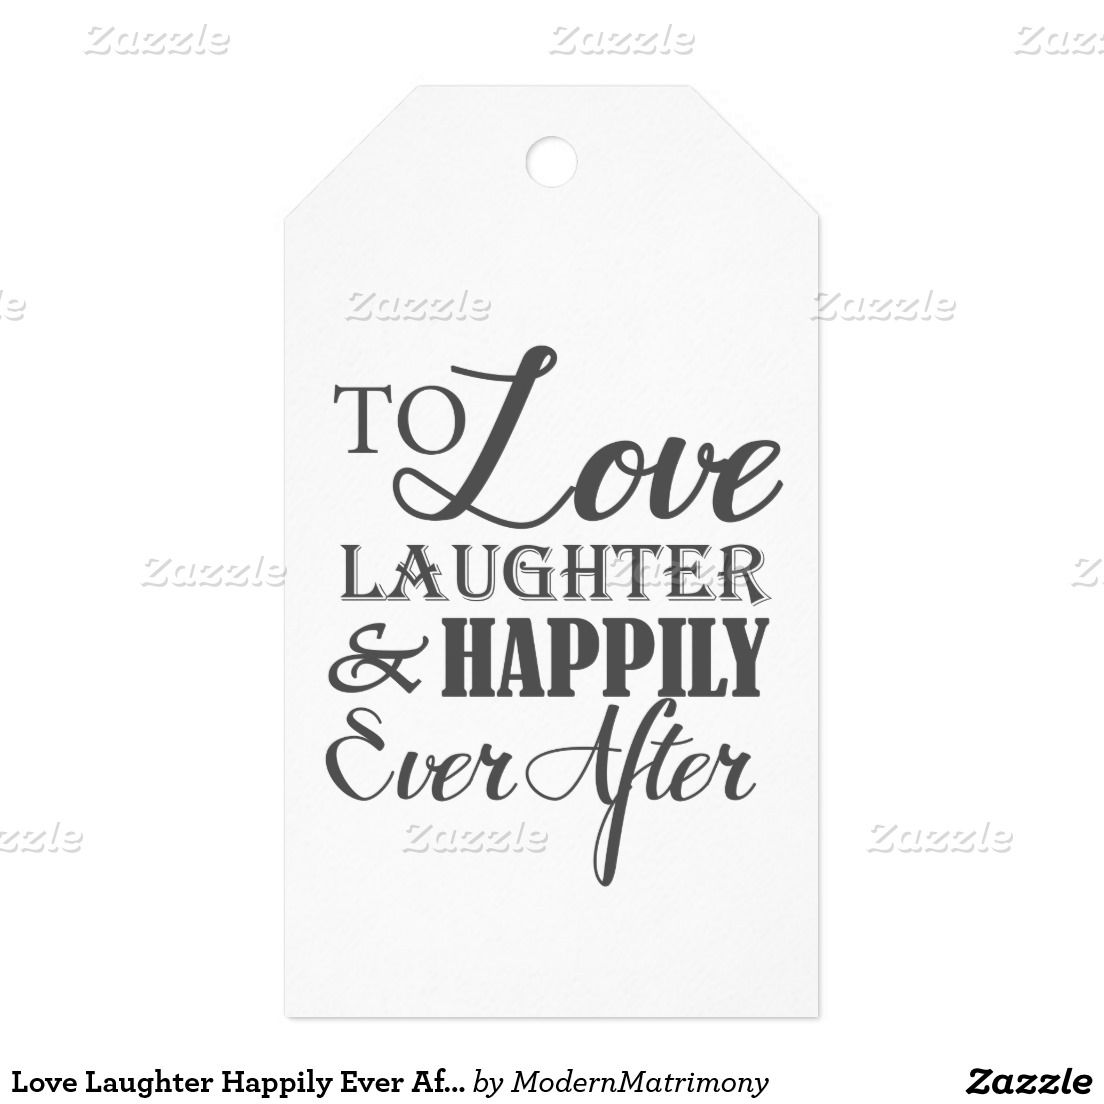 Love Laughter Happily Ever After Wedding Gift Tags | Wedding